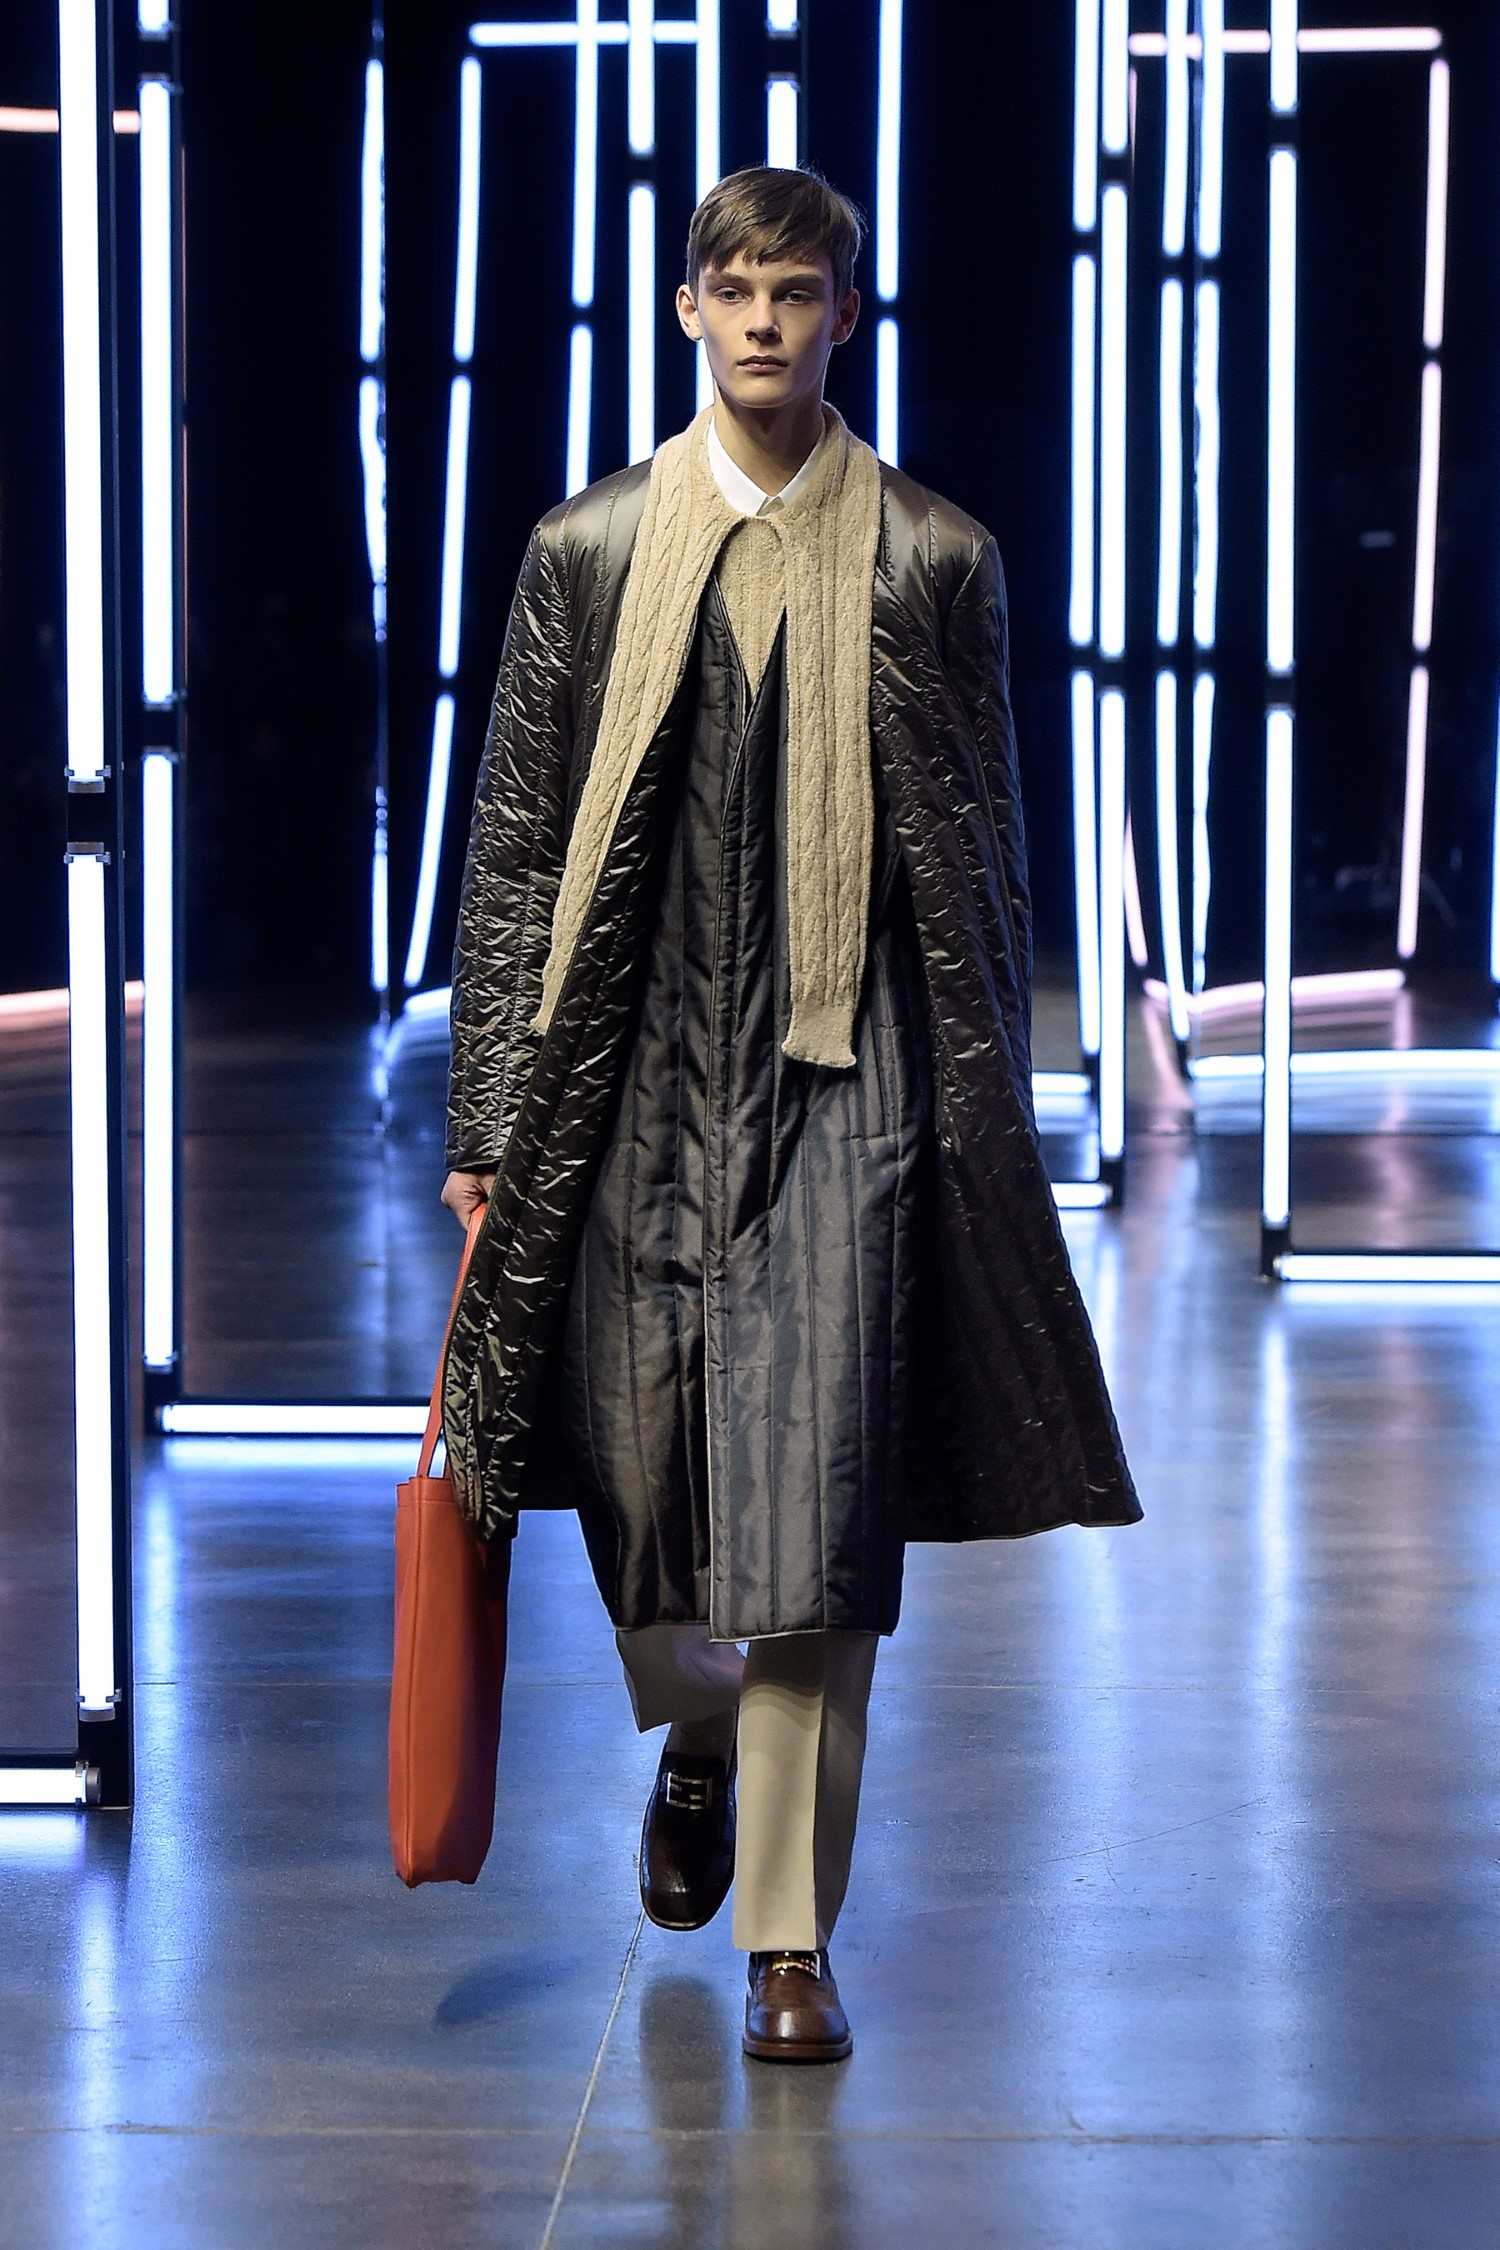 Fendi Fall Winter 2021 – Milan Fashion Week Men's